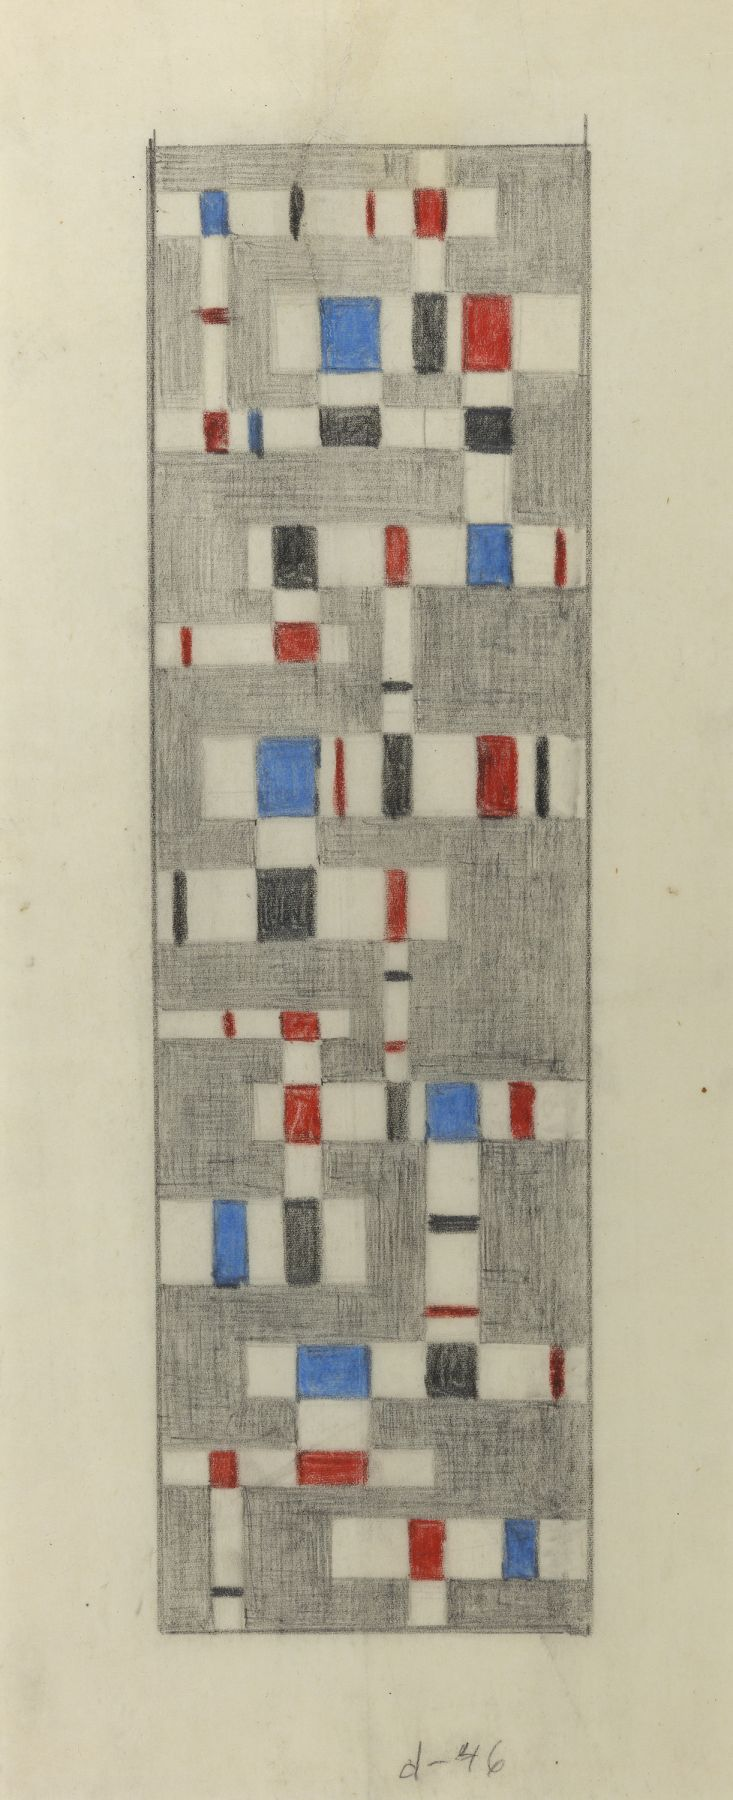 Burgoyne Diller, Untitled, 1946, Grpahite and crayon on vellum, 18 5/8 x 7 1/8 inches, Vertical pencil drawing with red and blue squares. Burgoyne Diller was a modernist artist who worked in various mediums to create geometric abstractions.